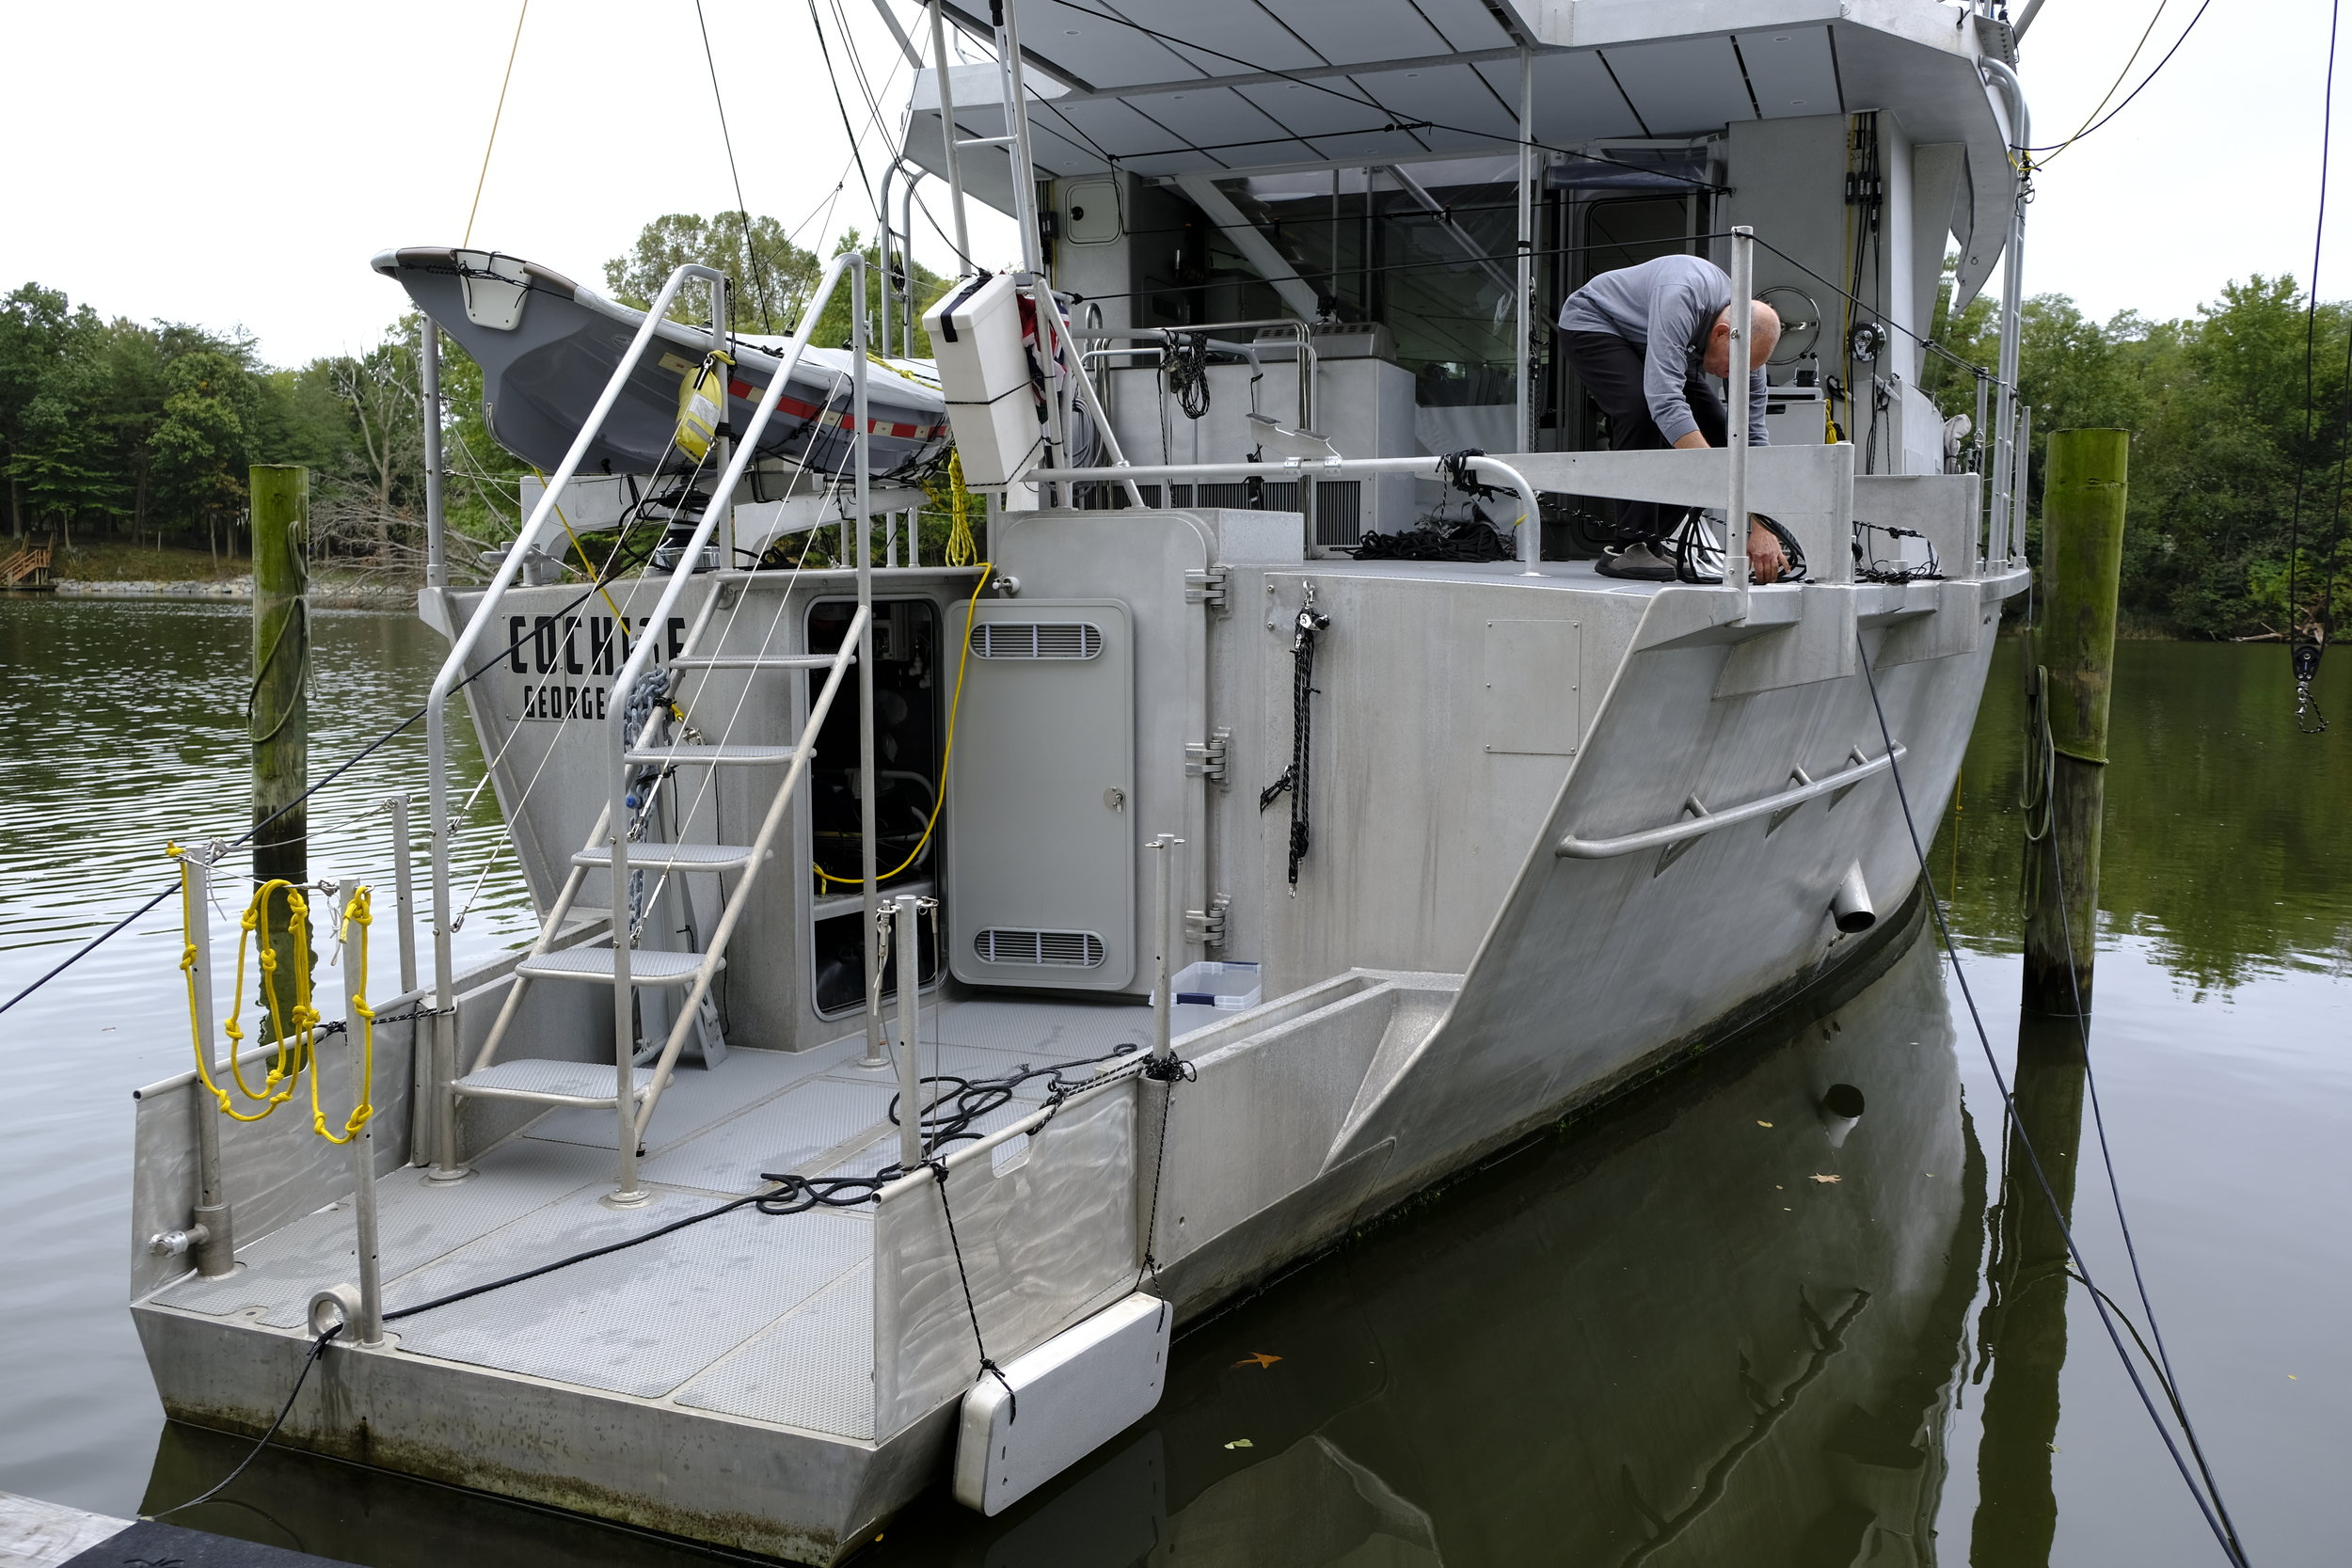 The narrow stern keeps the boat on track in large following seas, and doesn't force the bow down into waves. It also offers great access to engine room, storage locker, and access to the dinghy.